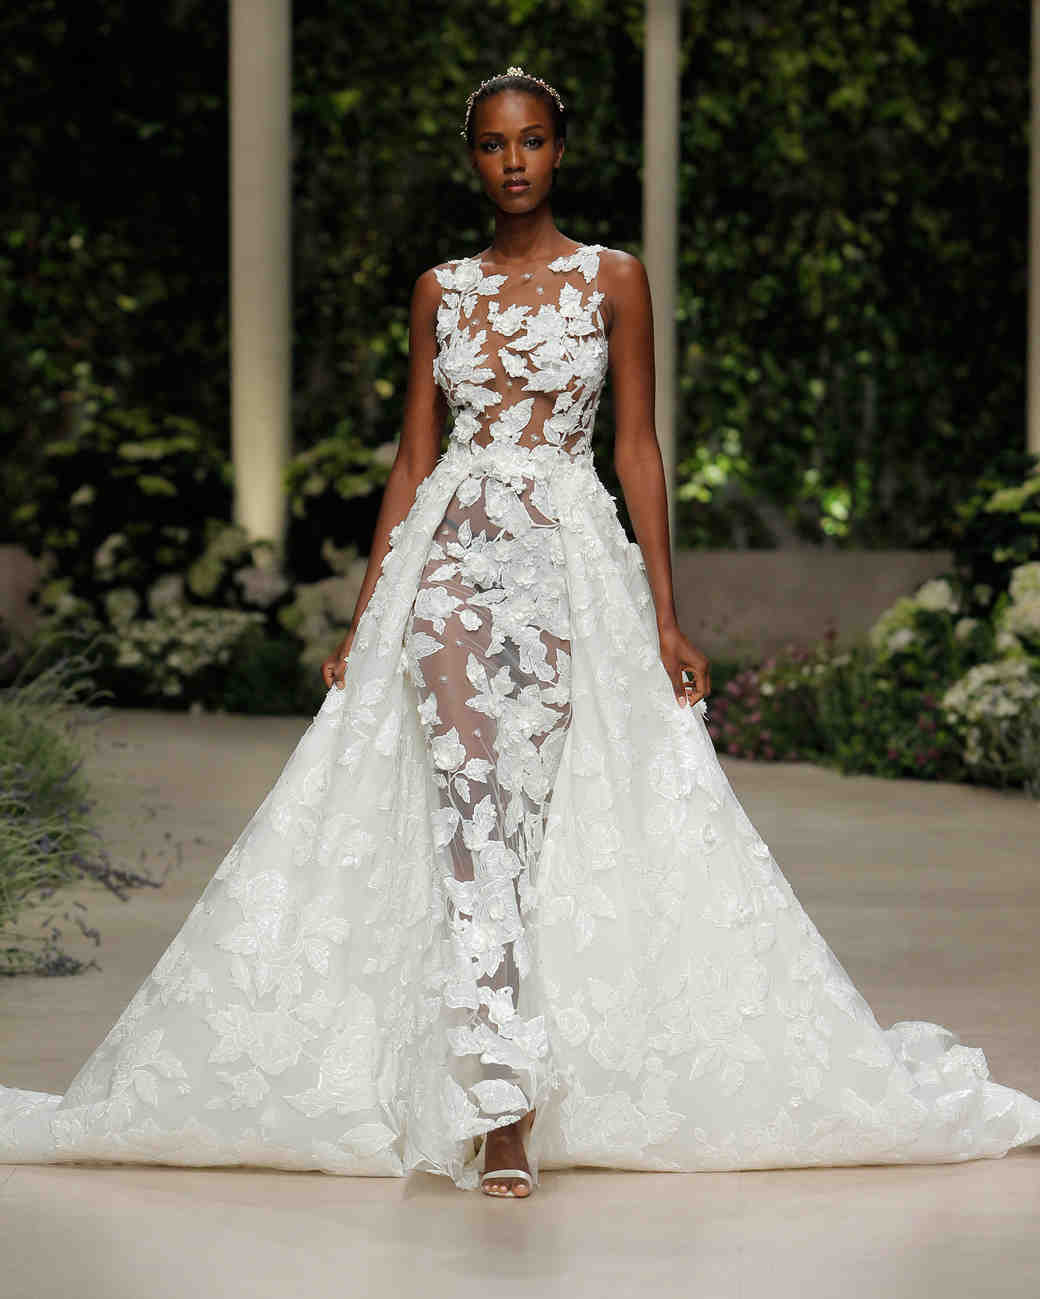 pronovias wedding dress spring 2019 illusion sheer embroidered